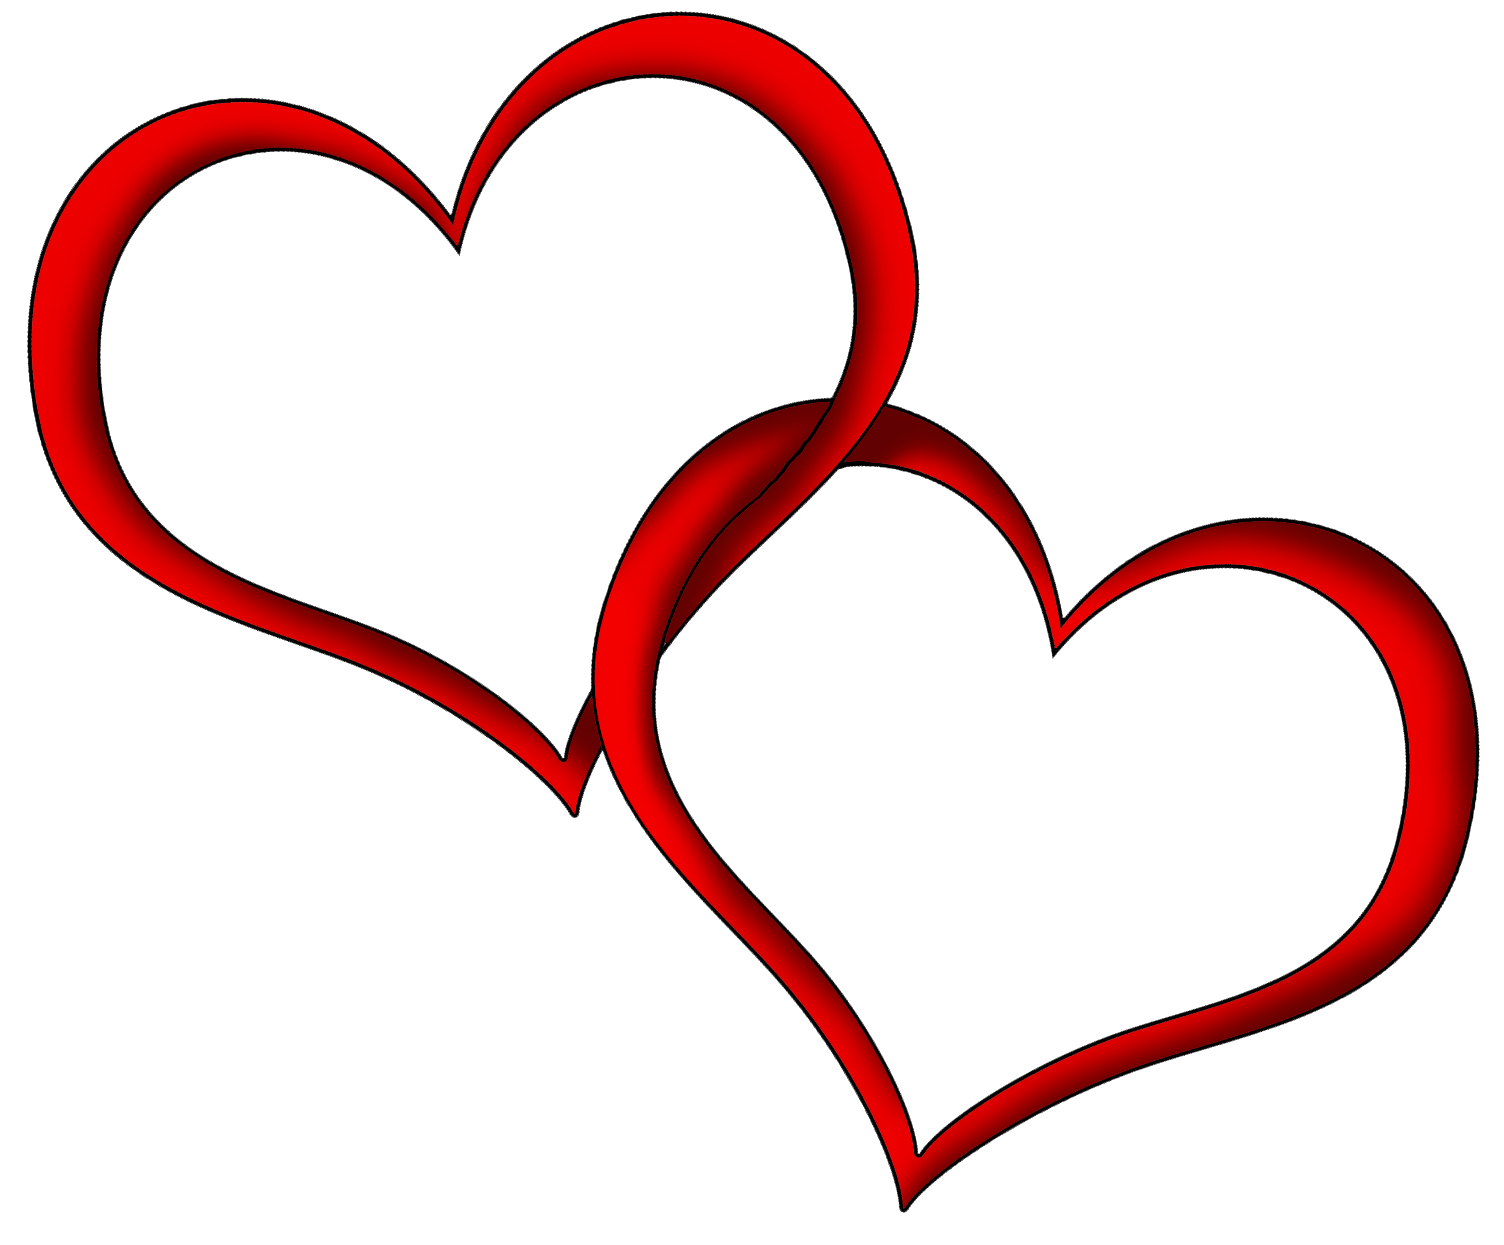 Free heart cliparts download. Hearts clipart wedding